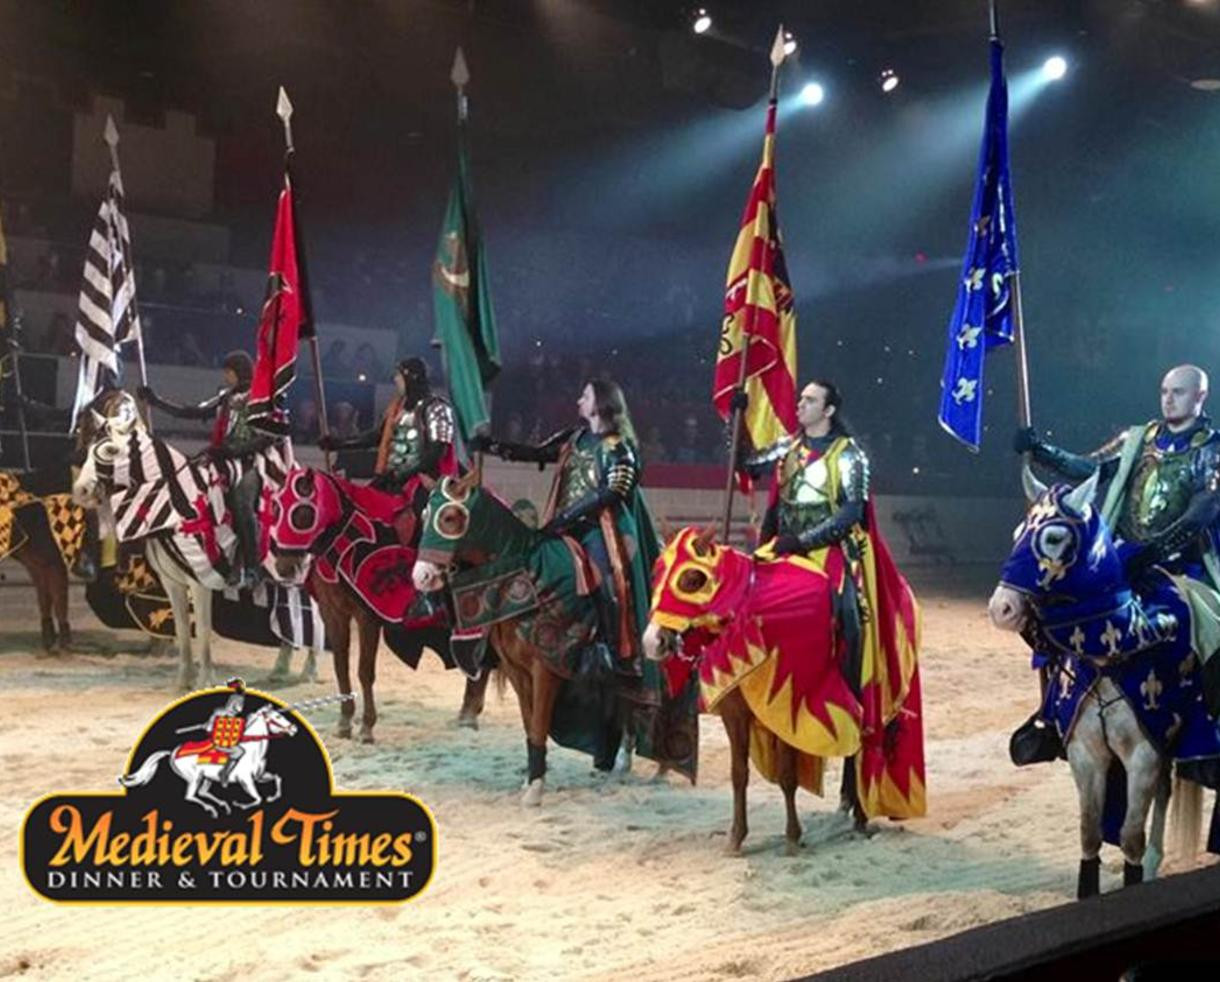 Medieval Times And Dinner  CHILD MEDIEVAL TIMES Dinner & Tournament Ticket No